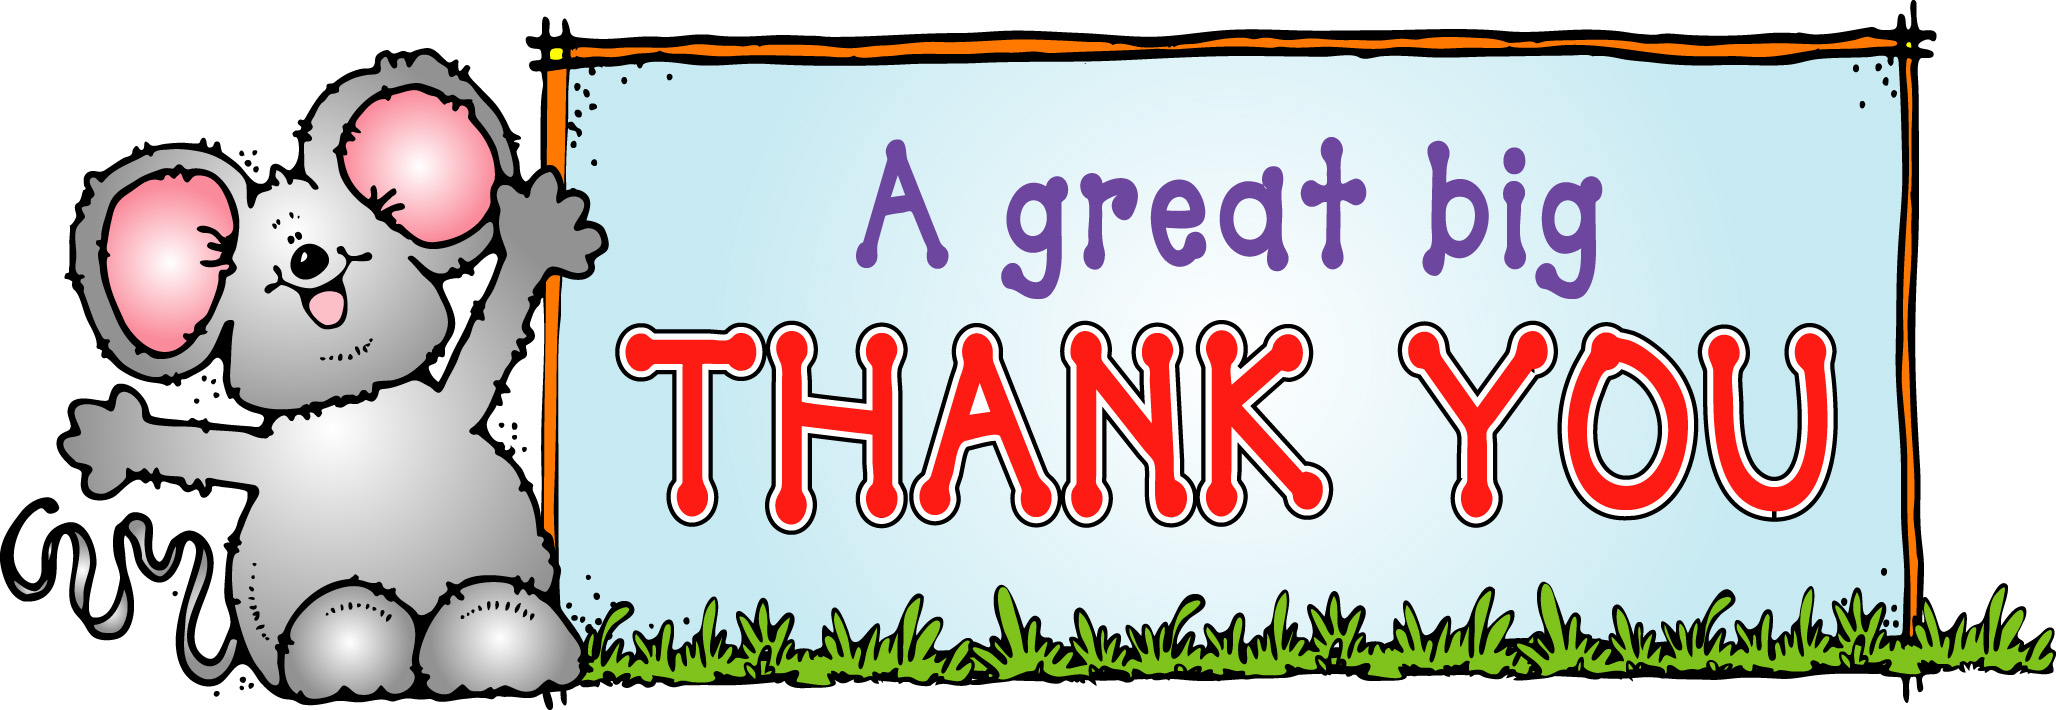 Thank You For Your Help Clip Art Car Tun-Thank You For Your Help Clip Art Car Tuning-9